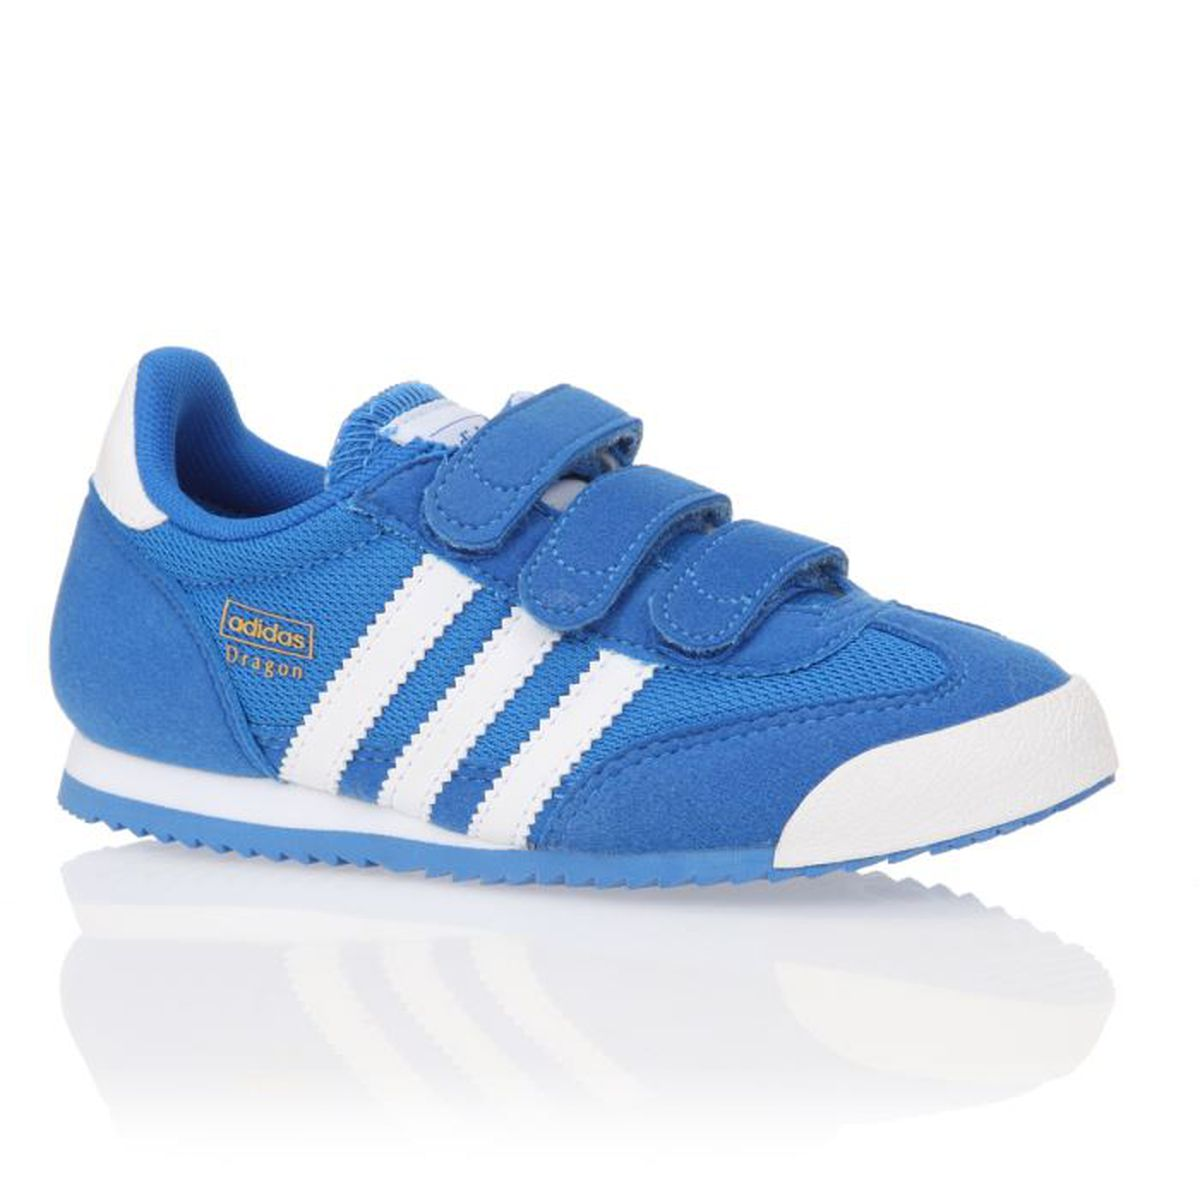 Adidas Dragon Enfant boutique